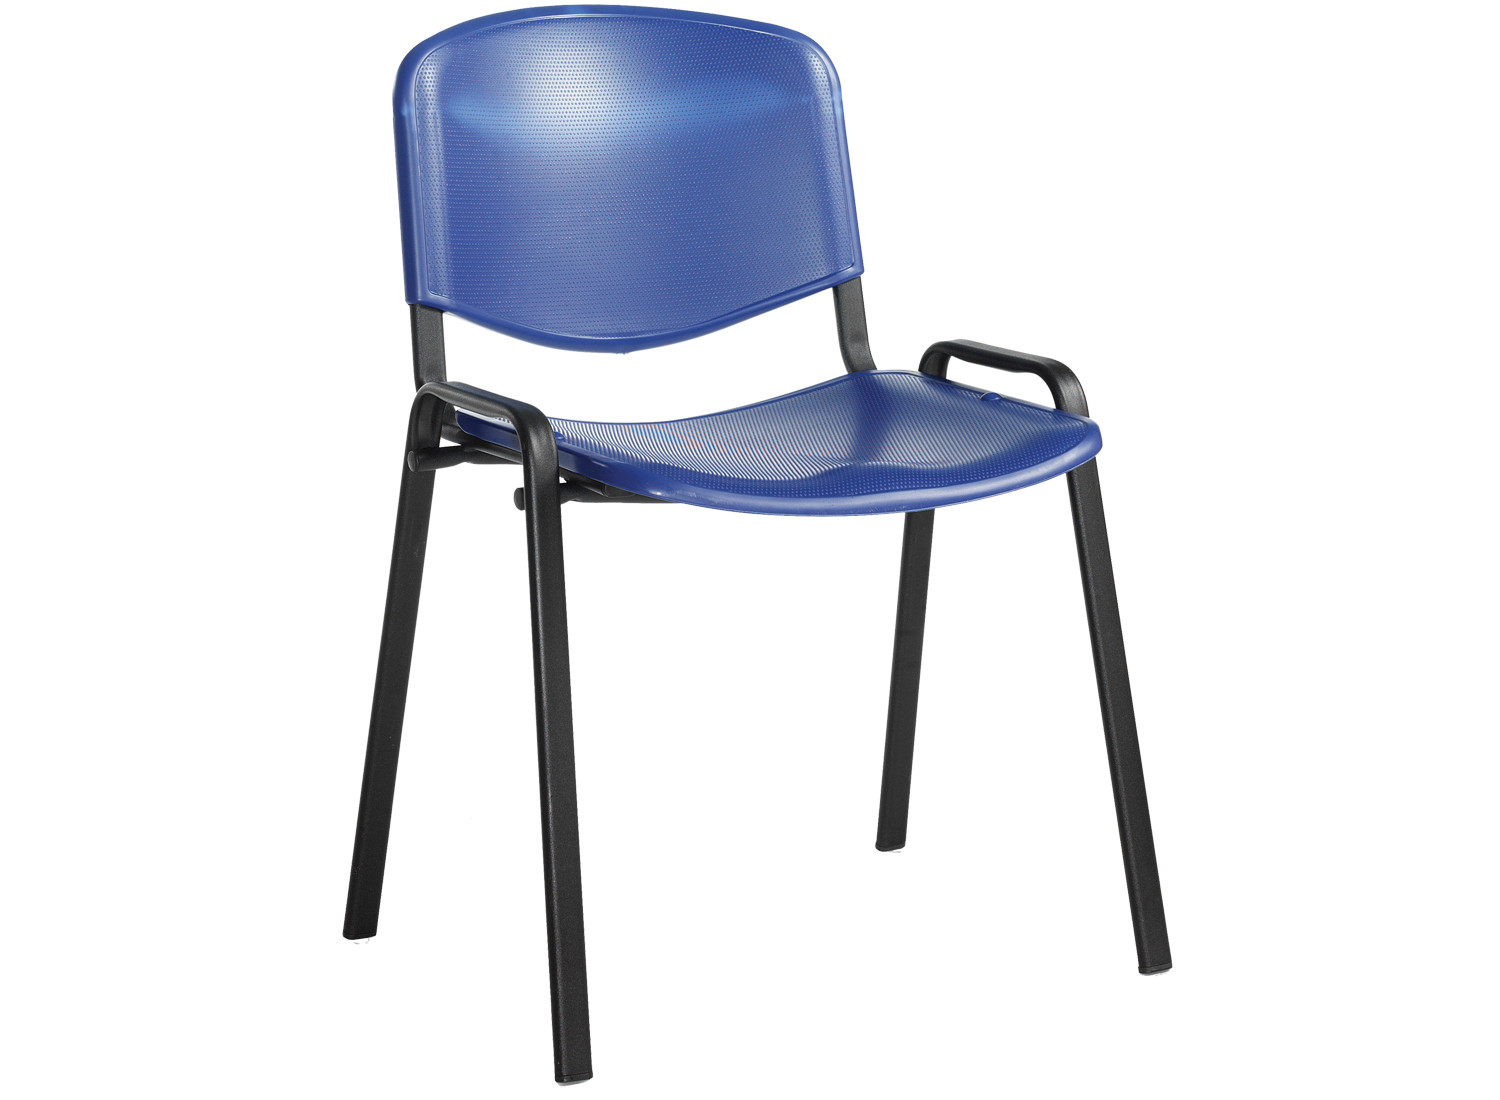 Plastic conference chair